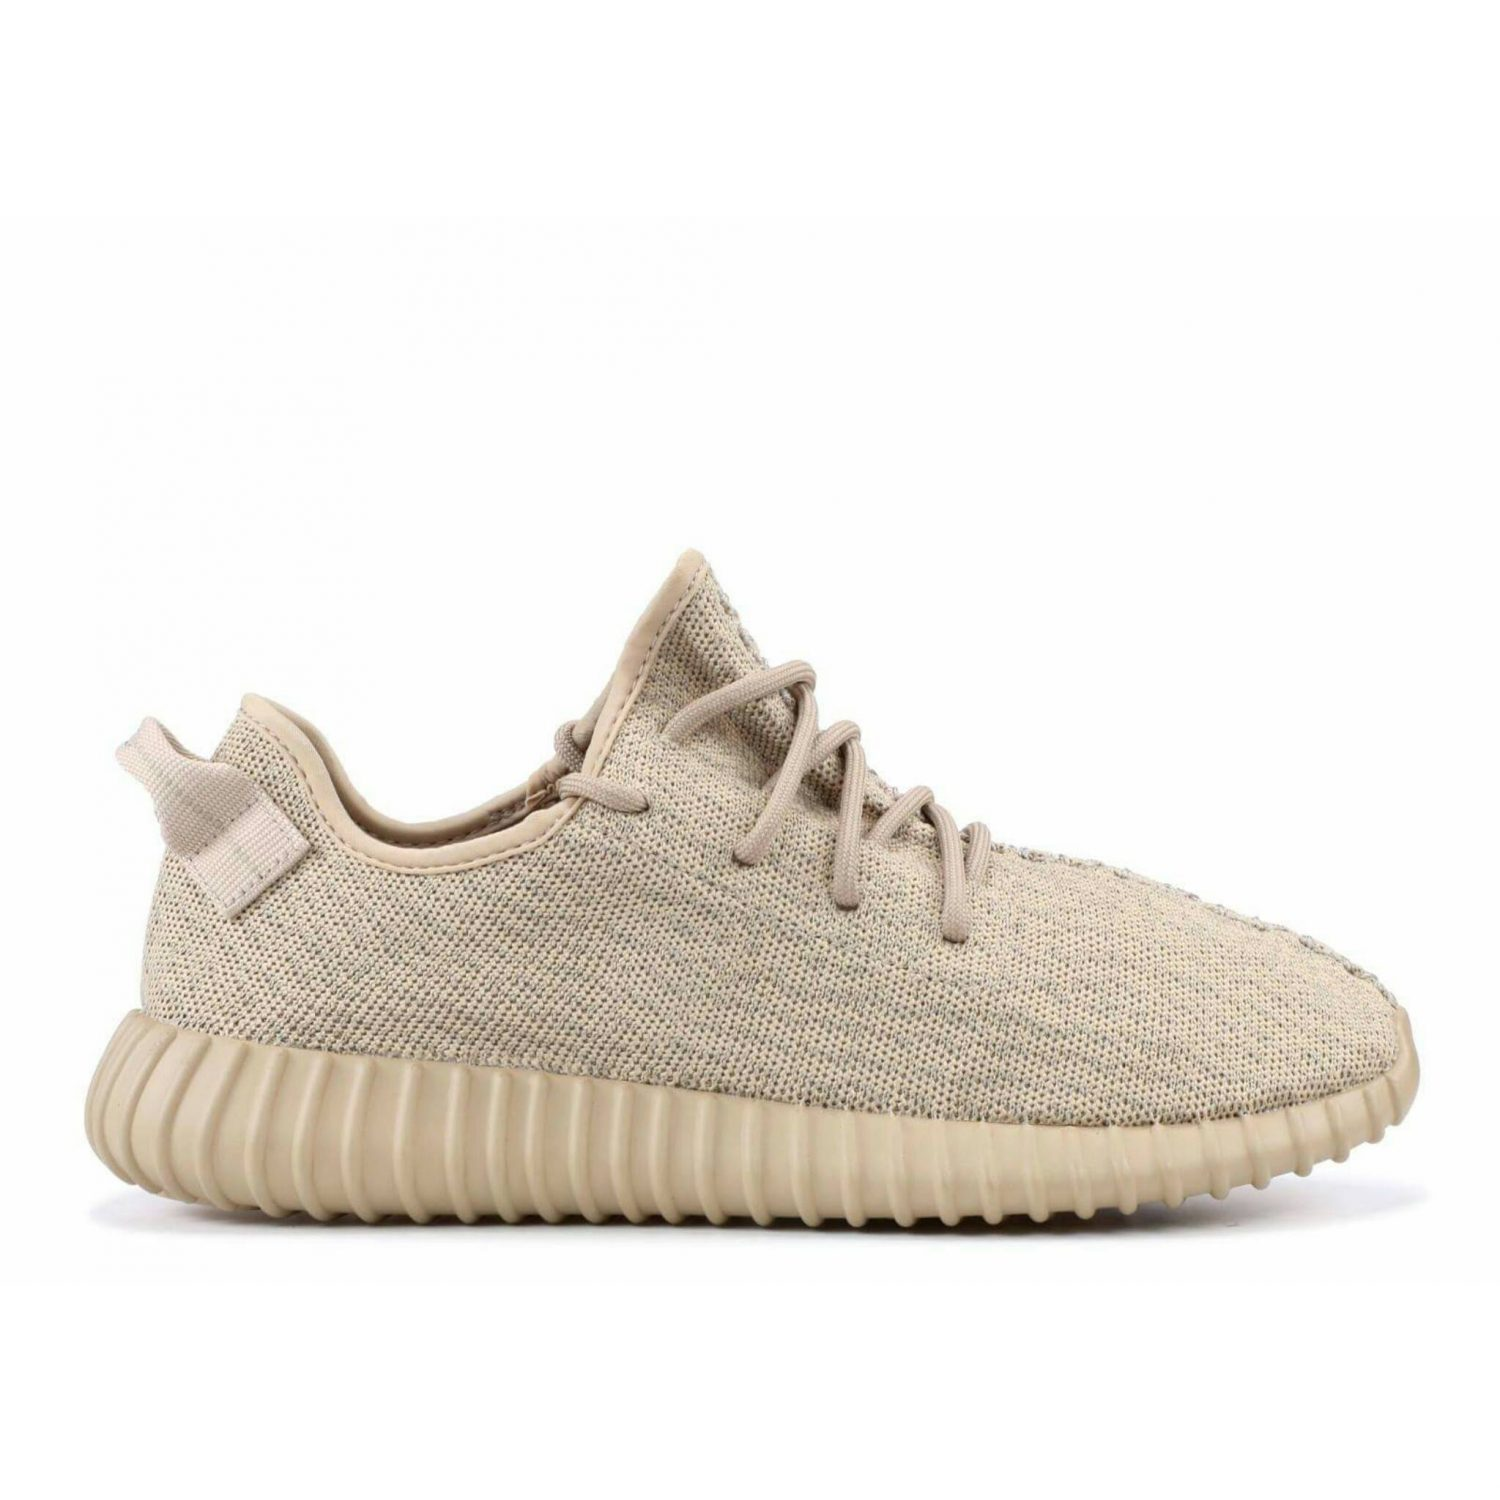 Adidas Yeezy 350 Boost Oxford Tan bellevue park.ch